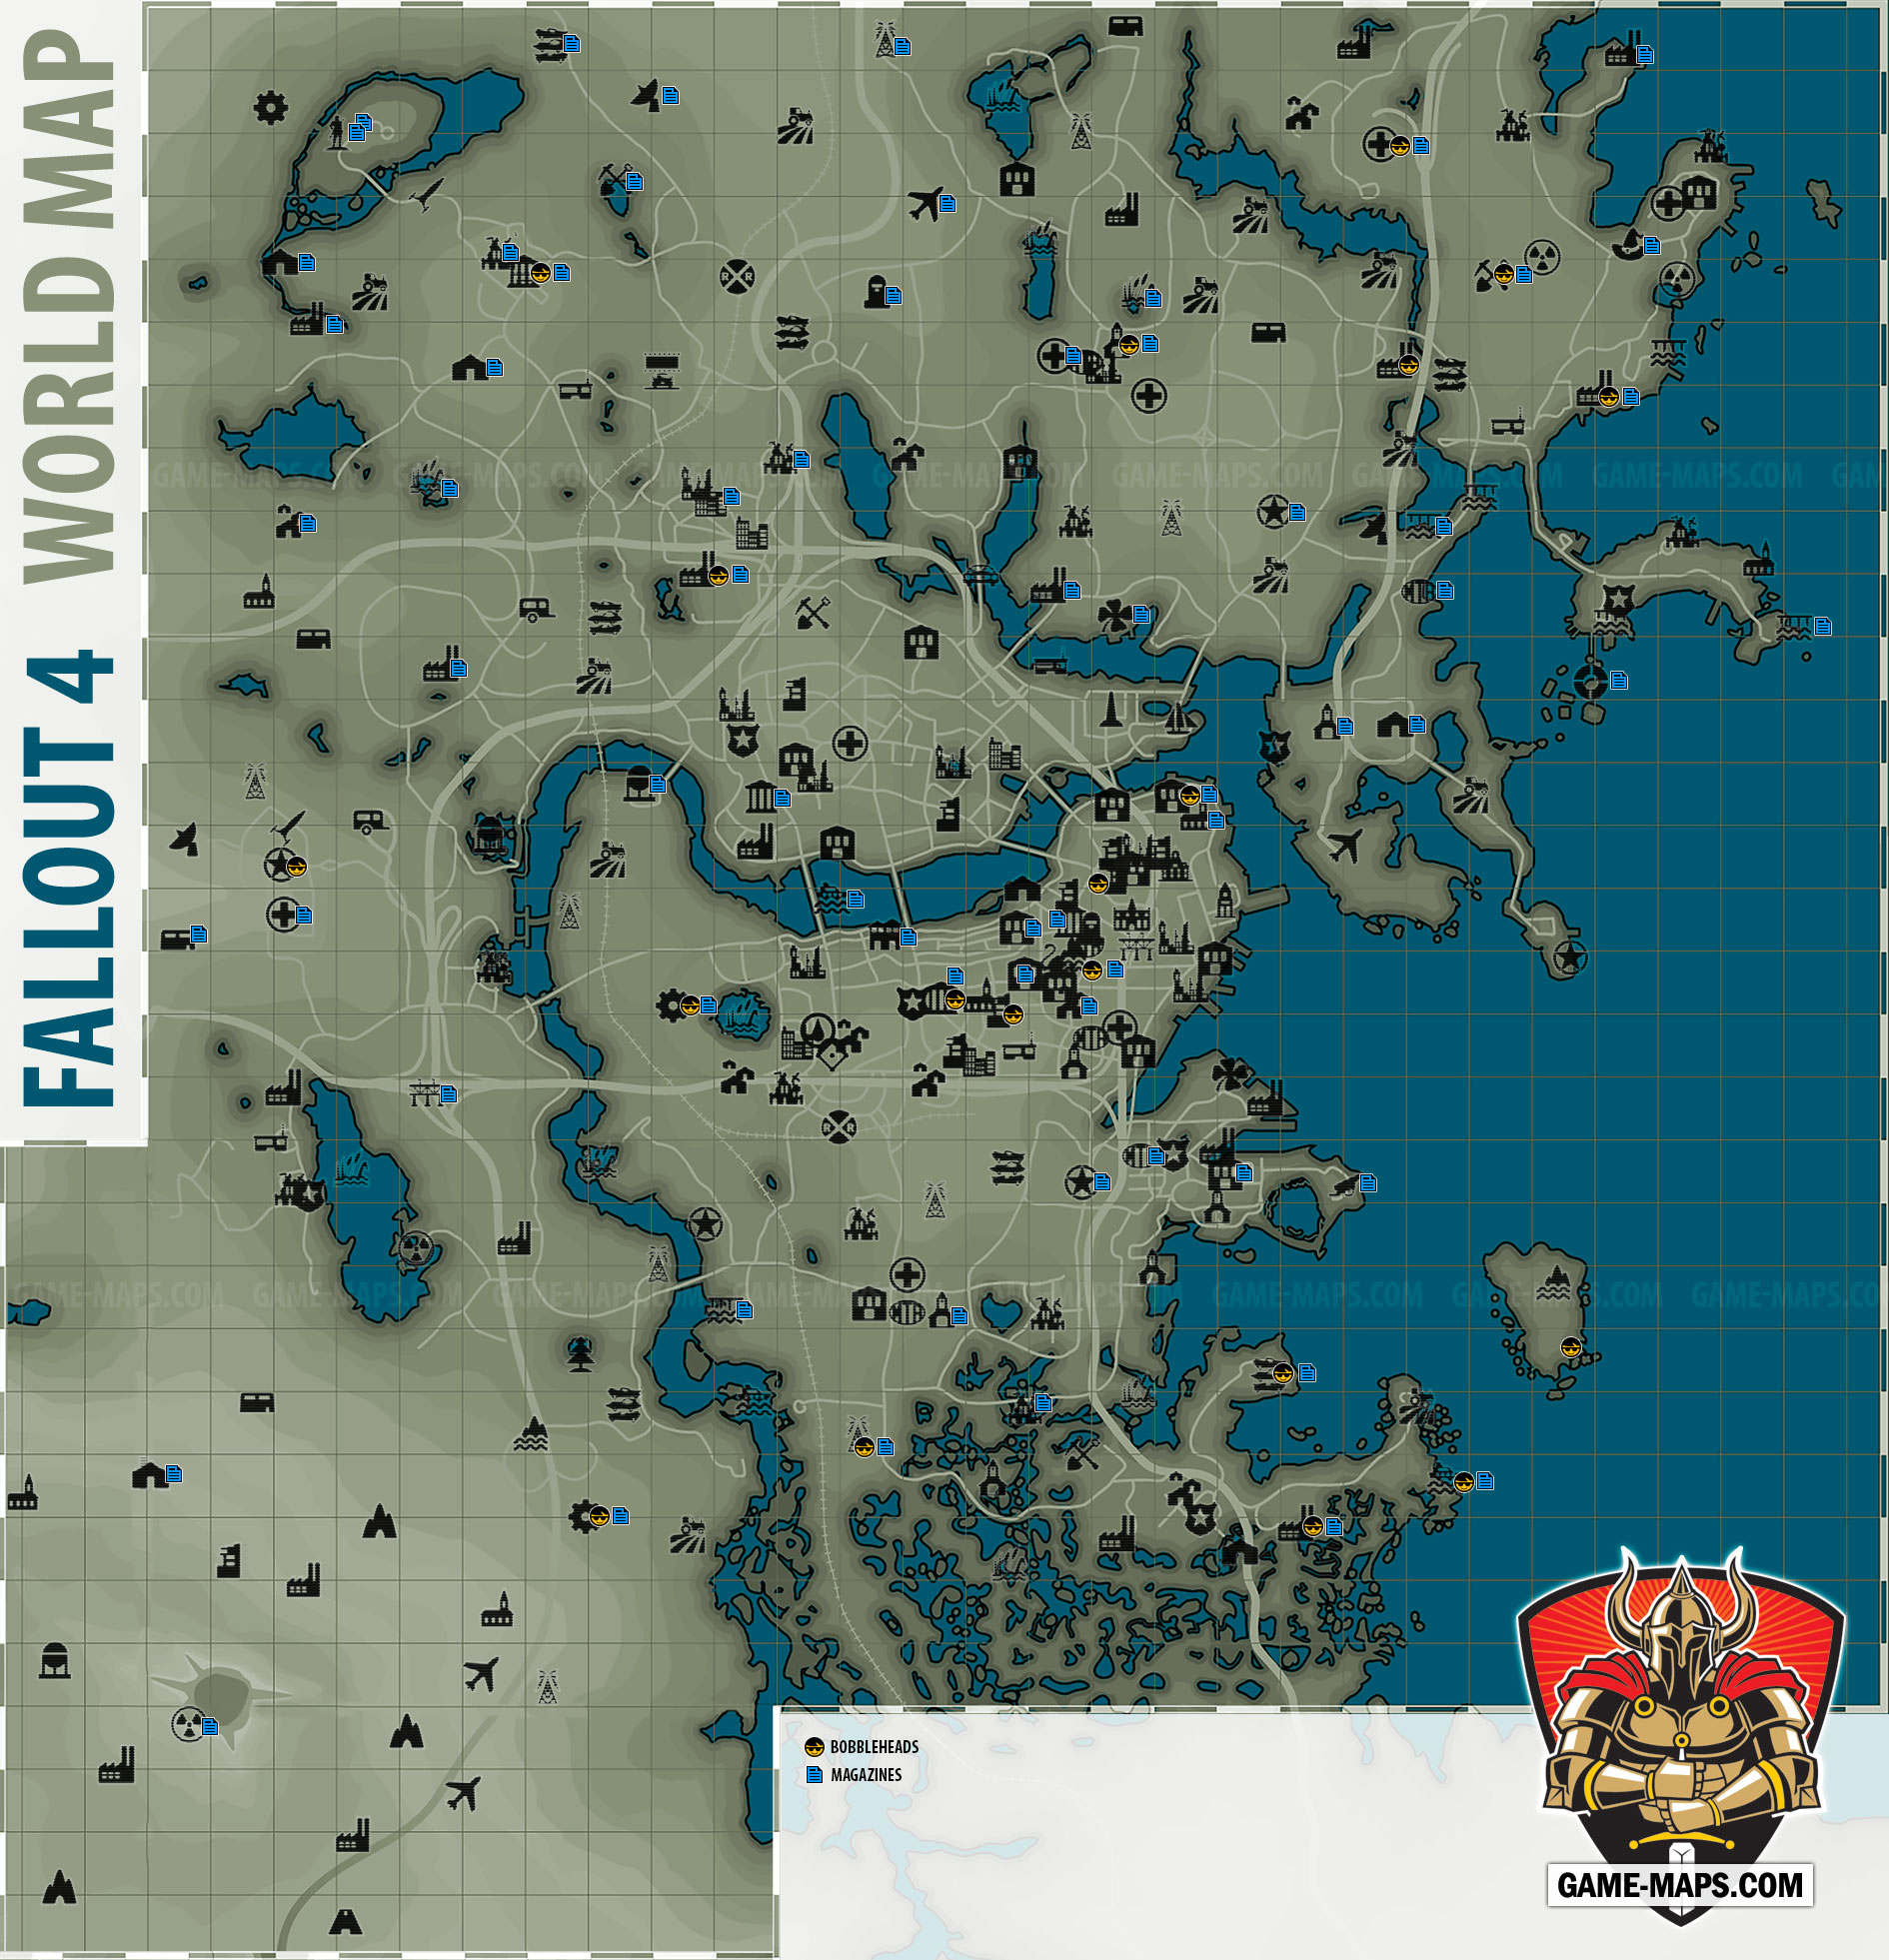 Fallout 4 world map fallout 4 maps walkthrough game guide fallout 4 fallout 4 world map gumiabroncs Choice Image